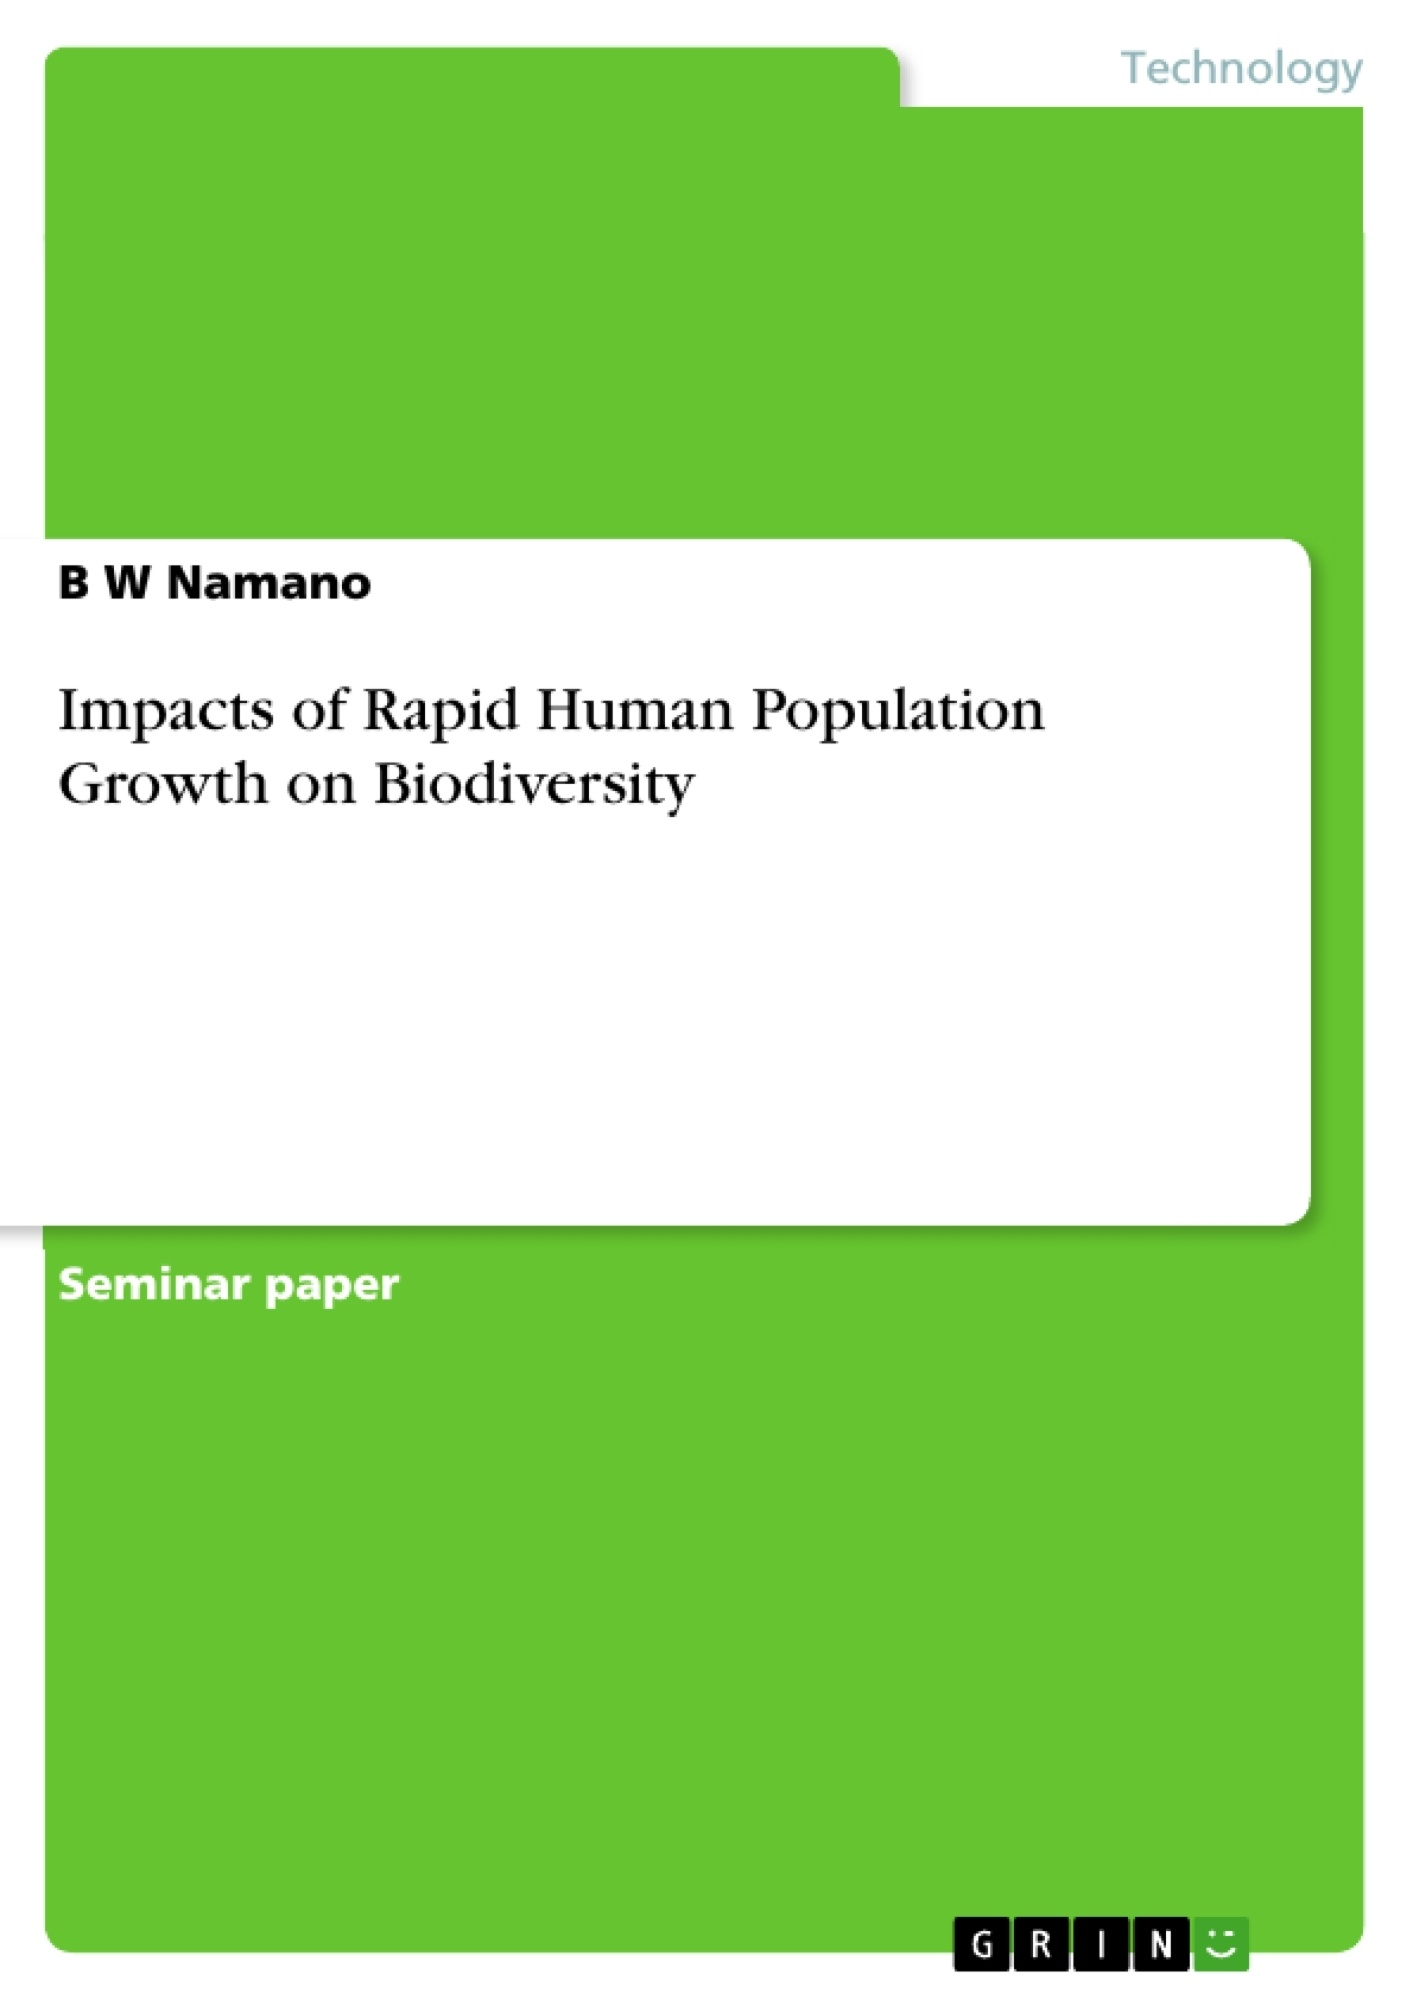 Title: Impacts of Rapid Human Population Growth on Biodiversity